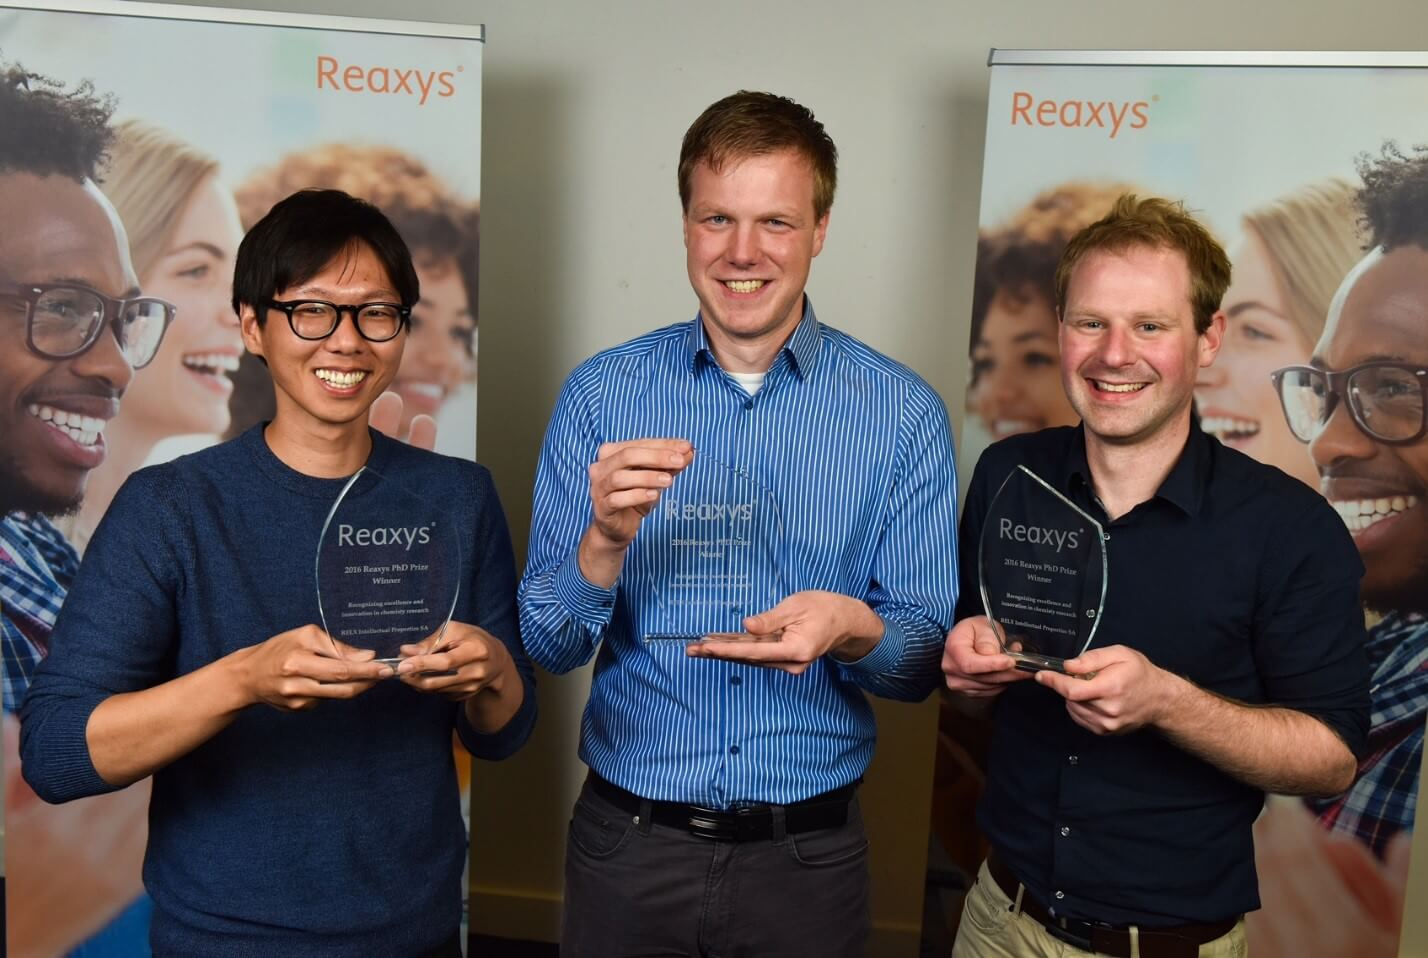 The three winners of the 2016 Reaxys PhD Prize.